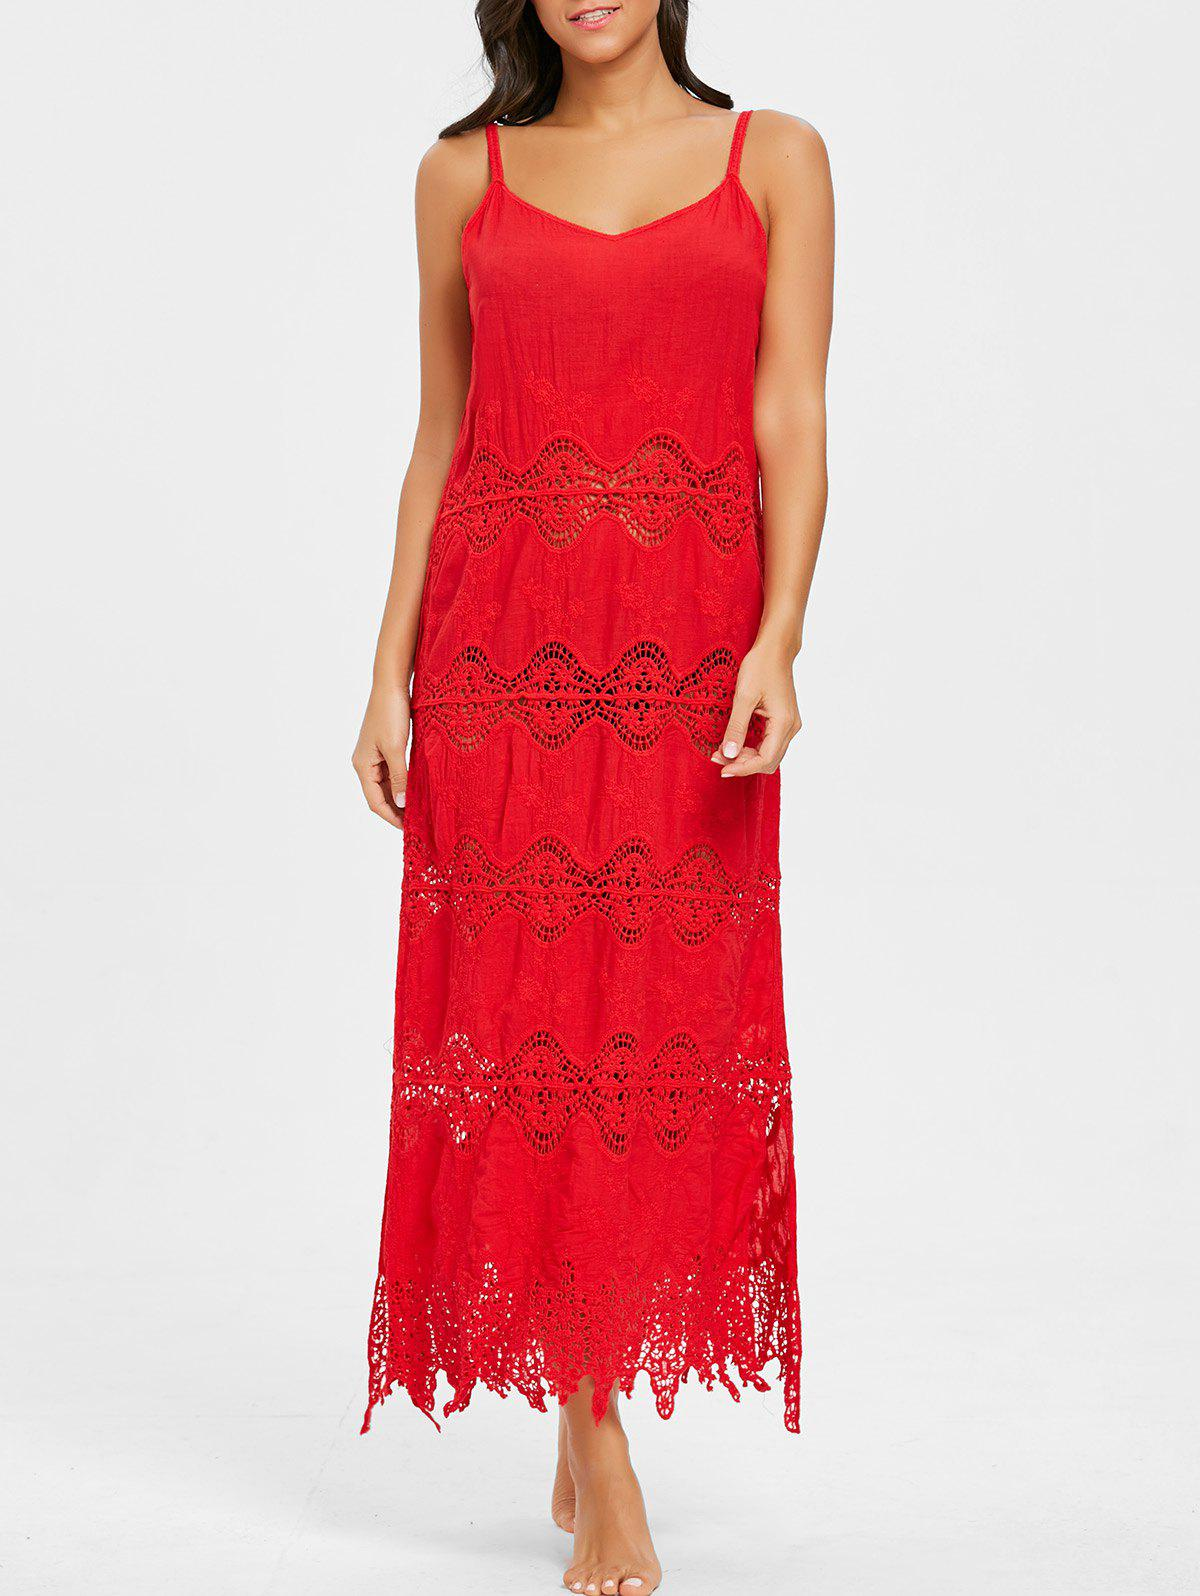 Chic Crochet Slip Maxi Cover Up Dress